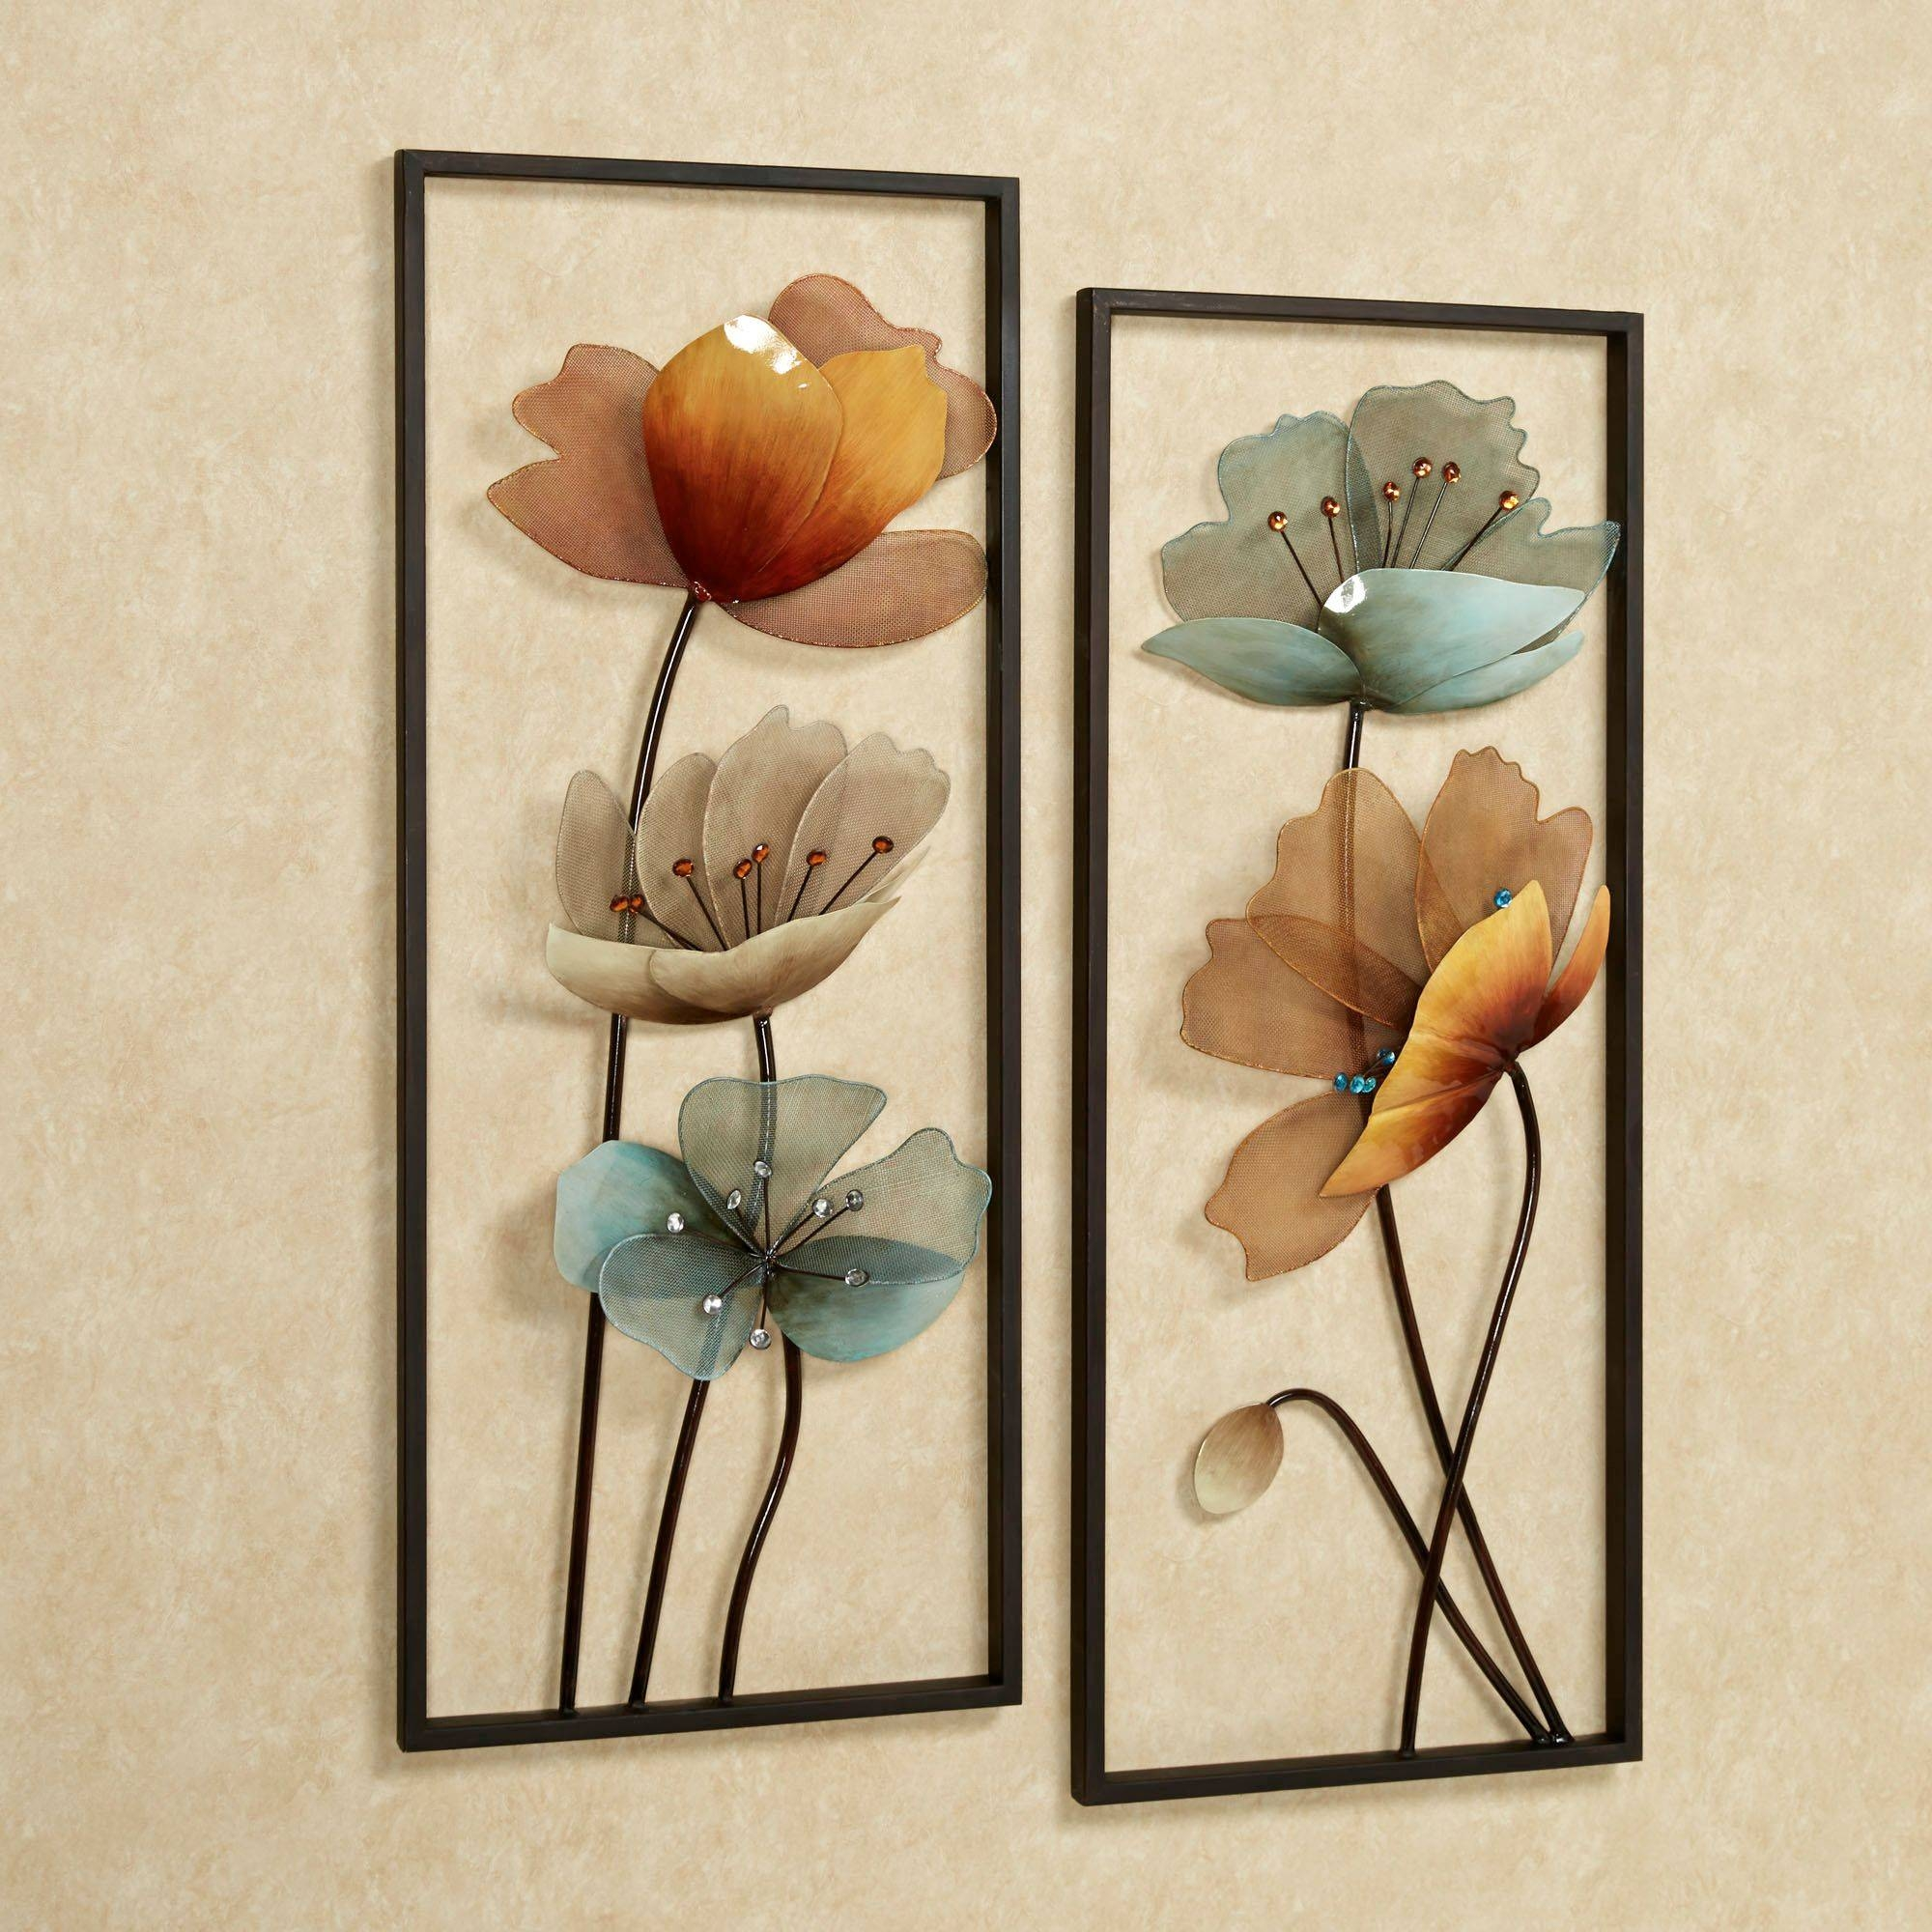 Trendy Canvas Wall Art Sets Cheap Buy Canvas Wall Art Floral Within Latest 3 Piece Floral Canvas Wall Art (View 14 of 20)